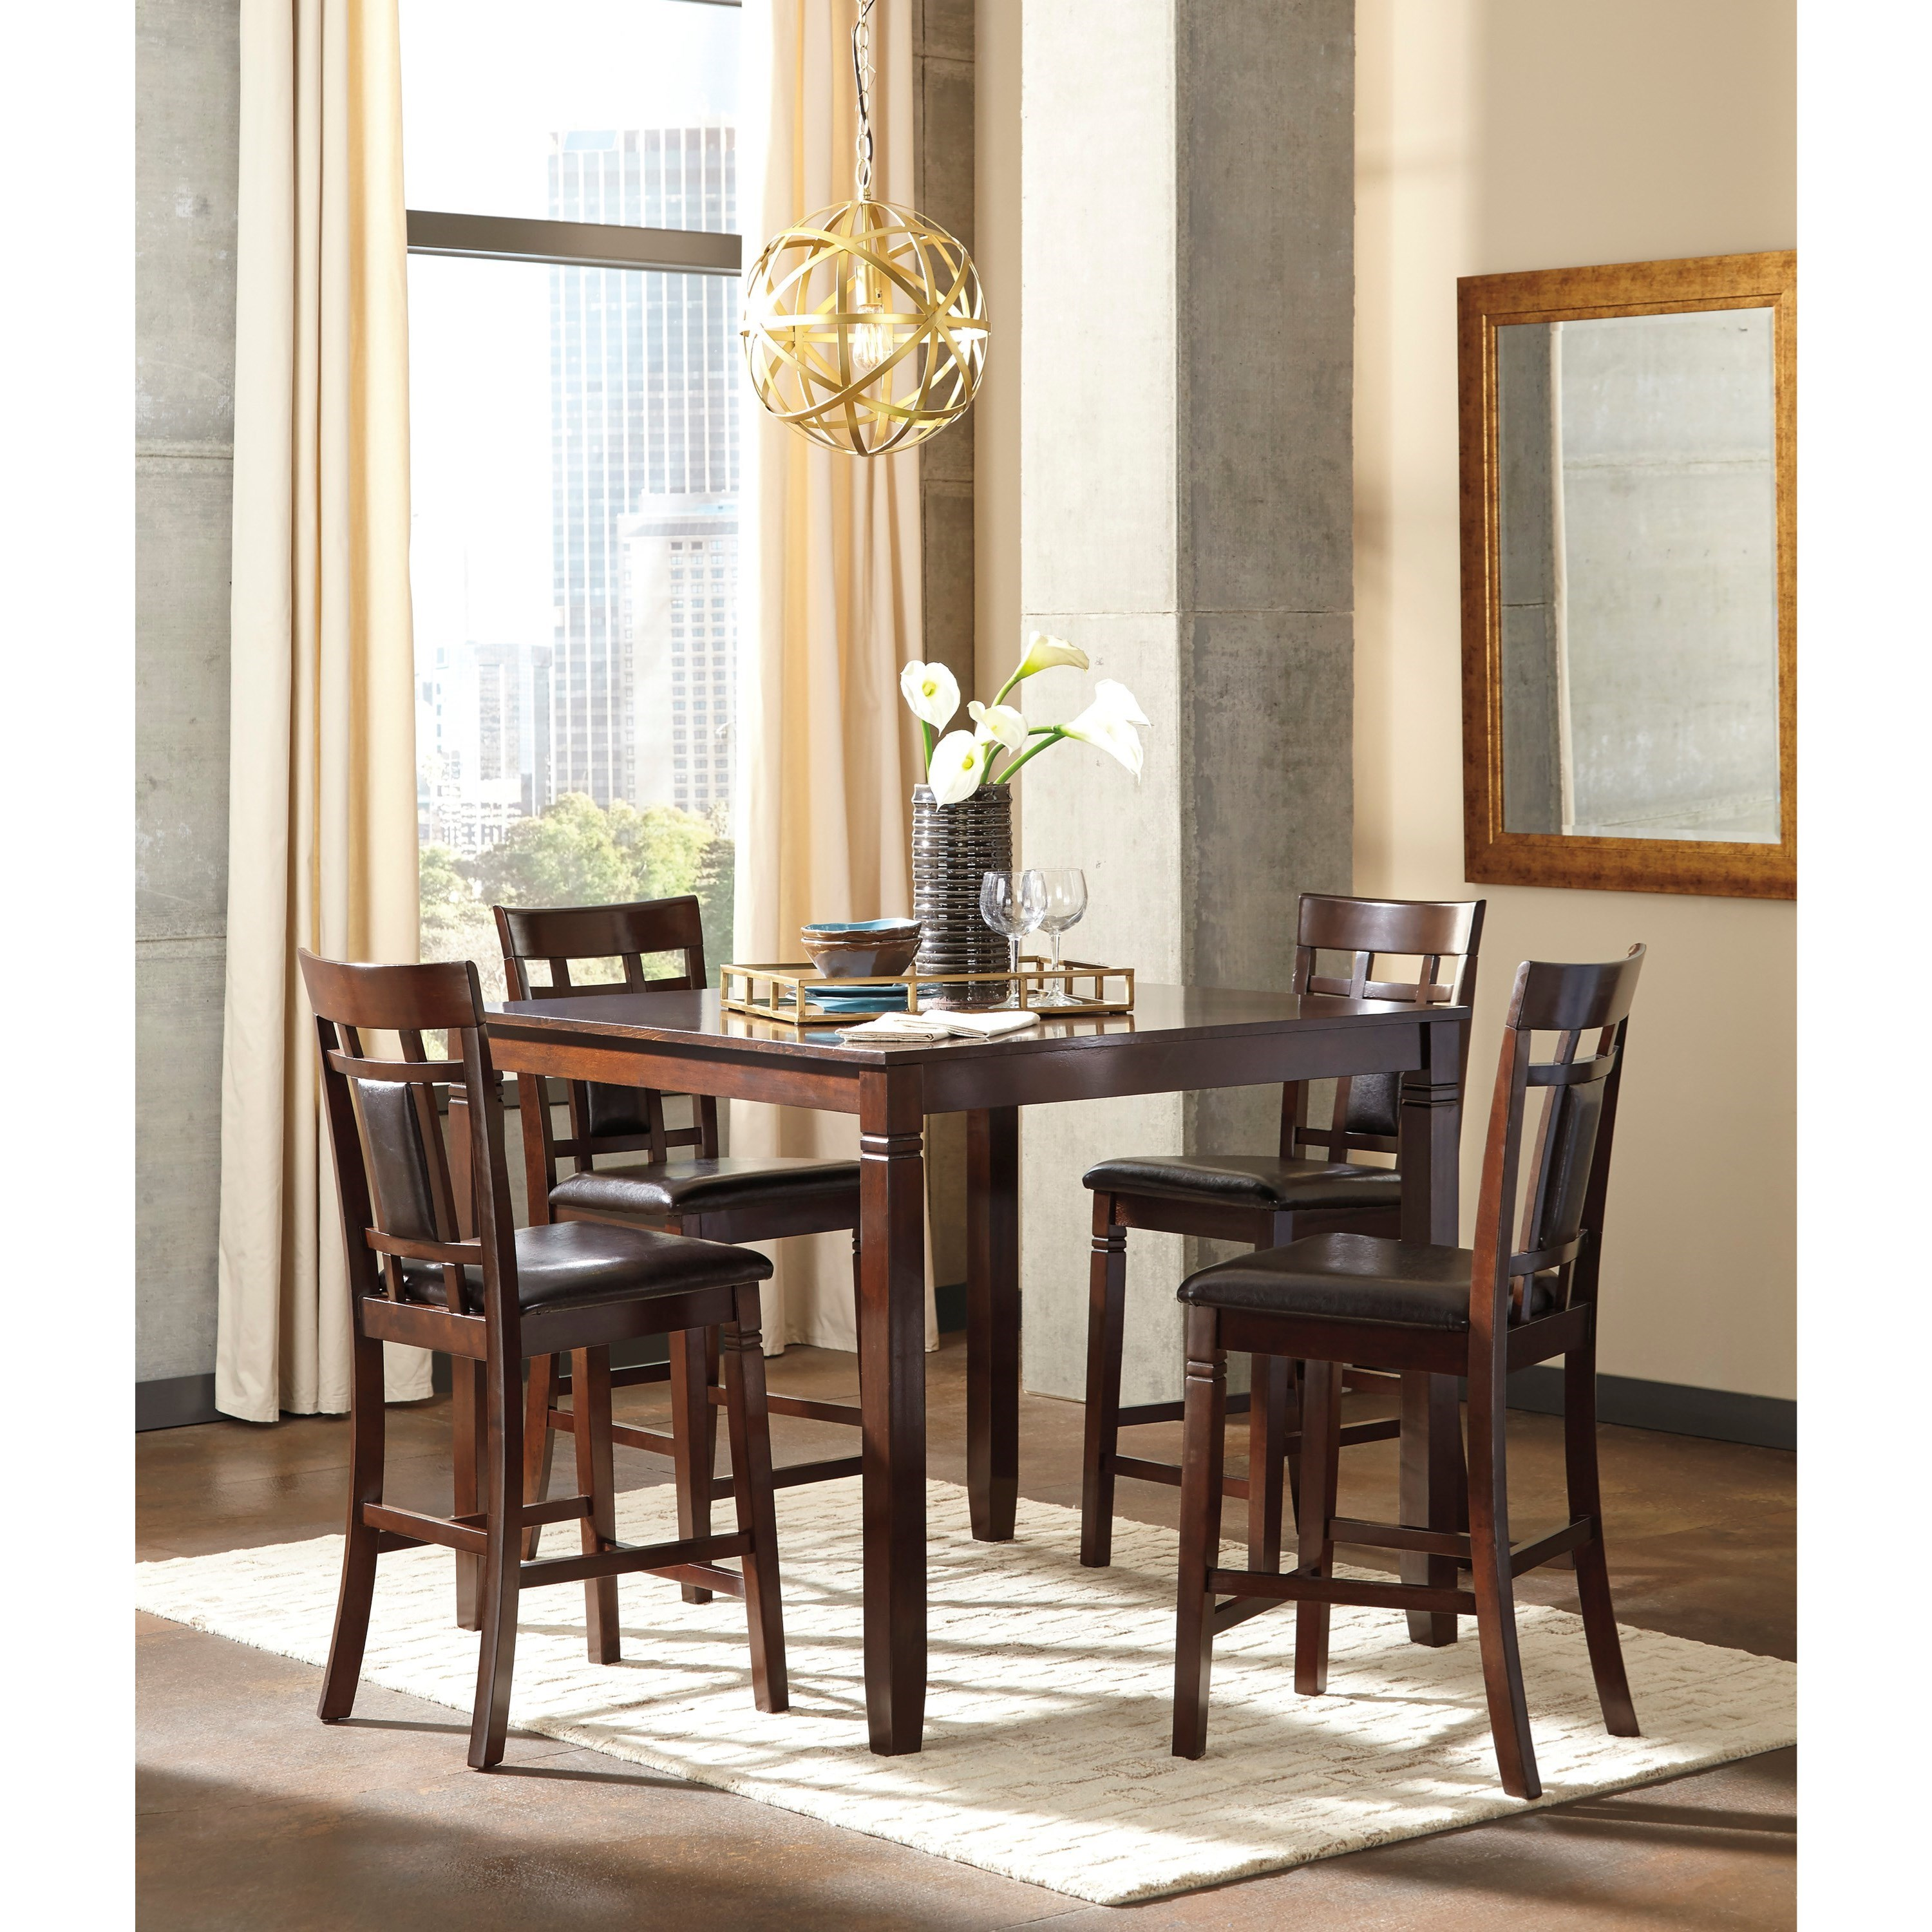 Signature design by ashley bennox contemporary 5 piece for Dining room 5 piece sets